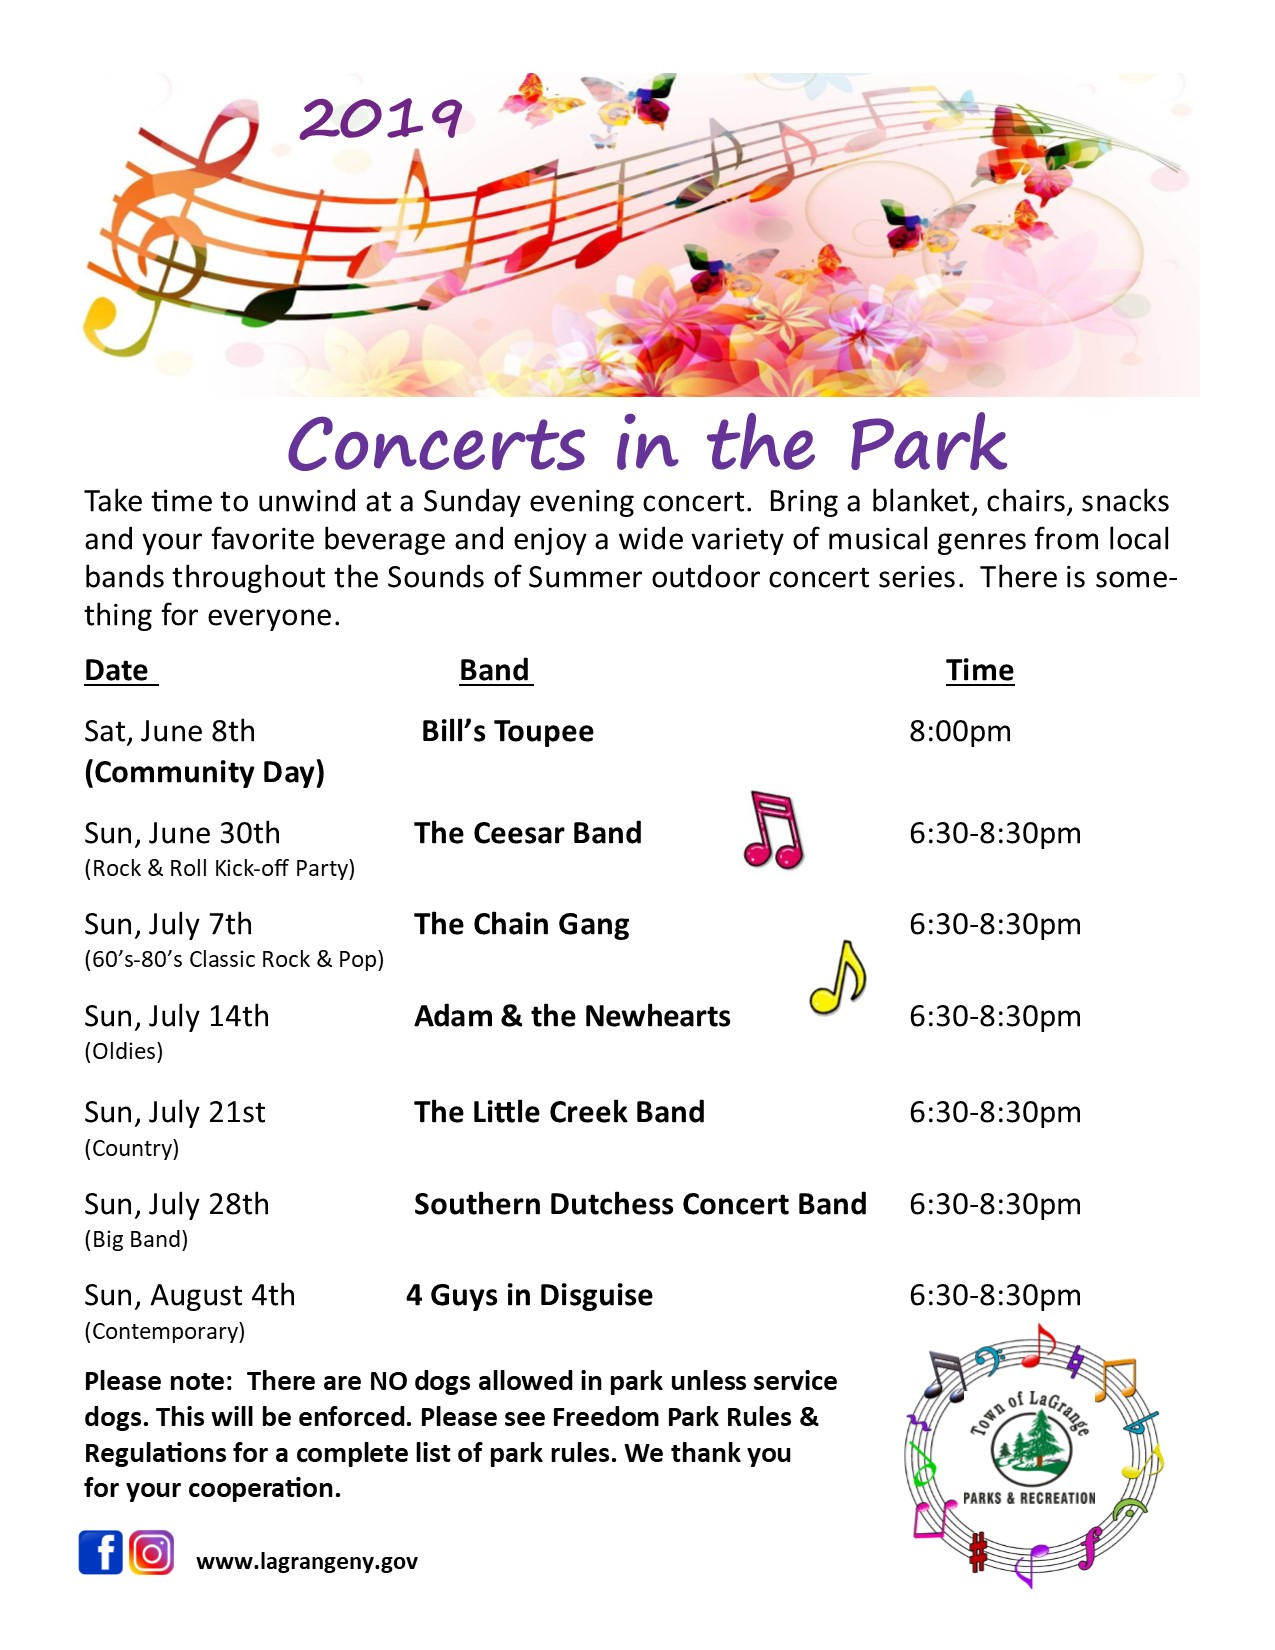 2019 Concerts in Freedom Park